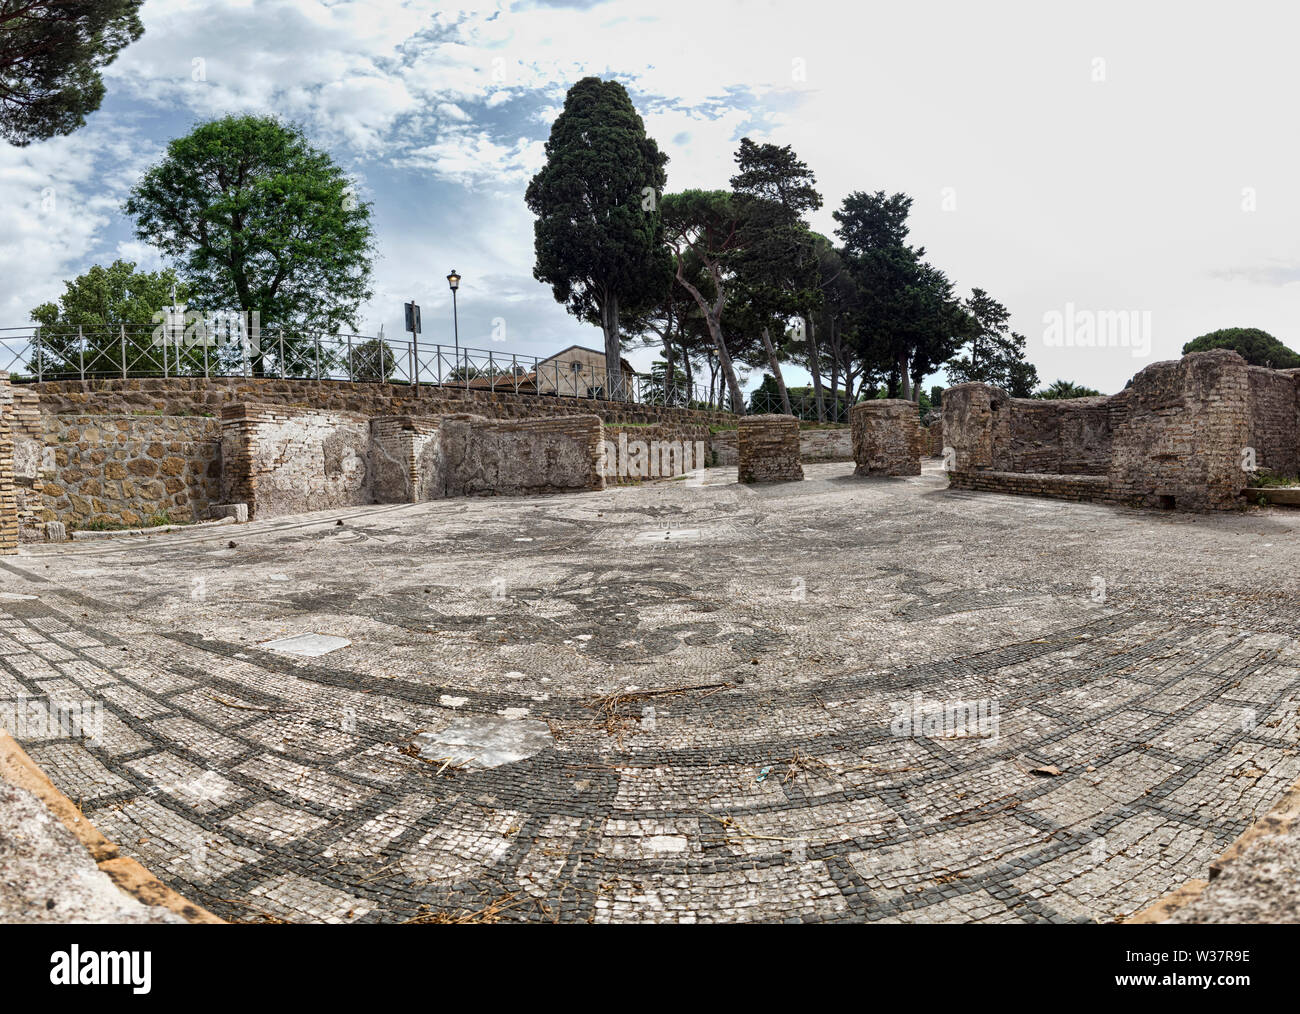 Panoramic view of the frigidarium in the Cisiarii thermal spa in the archaeological site of Ostia Antica - Roma Stock Photo